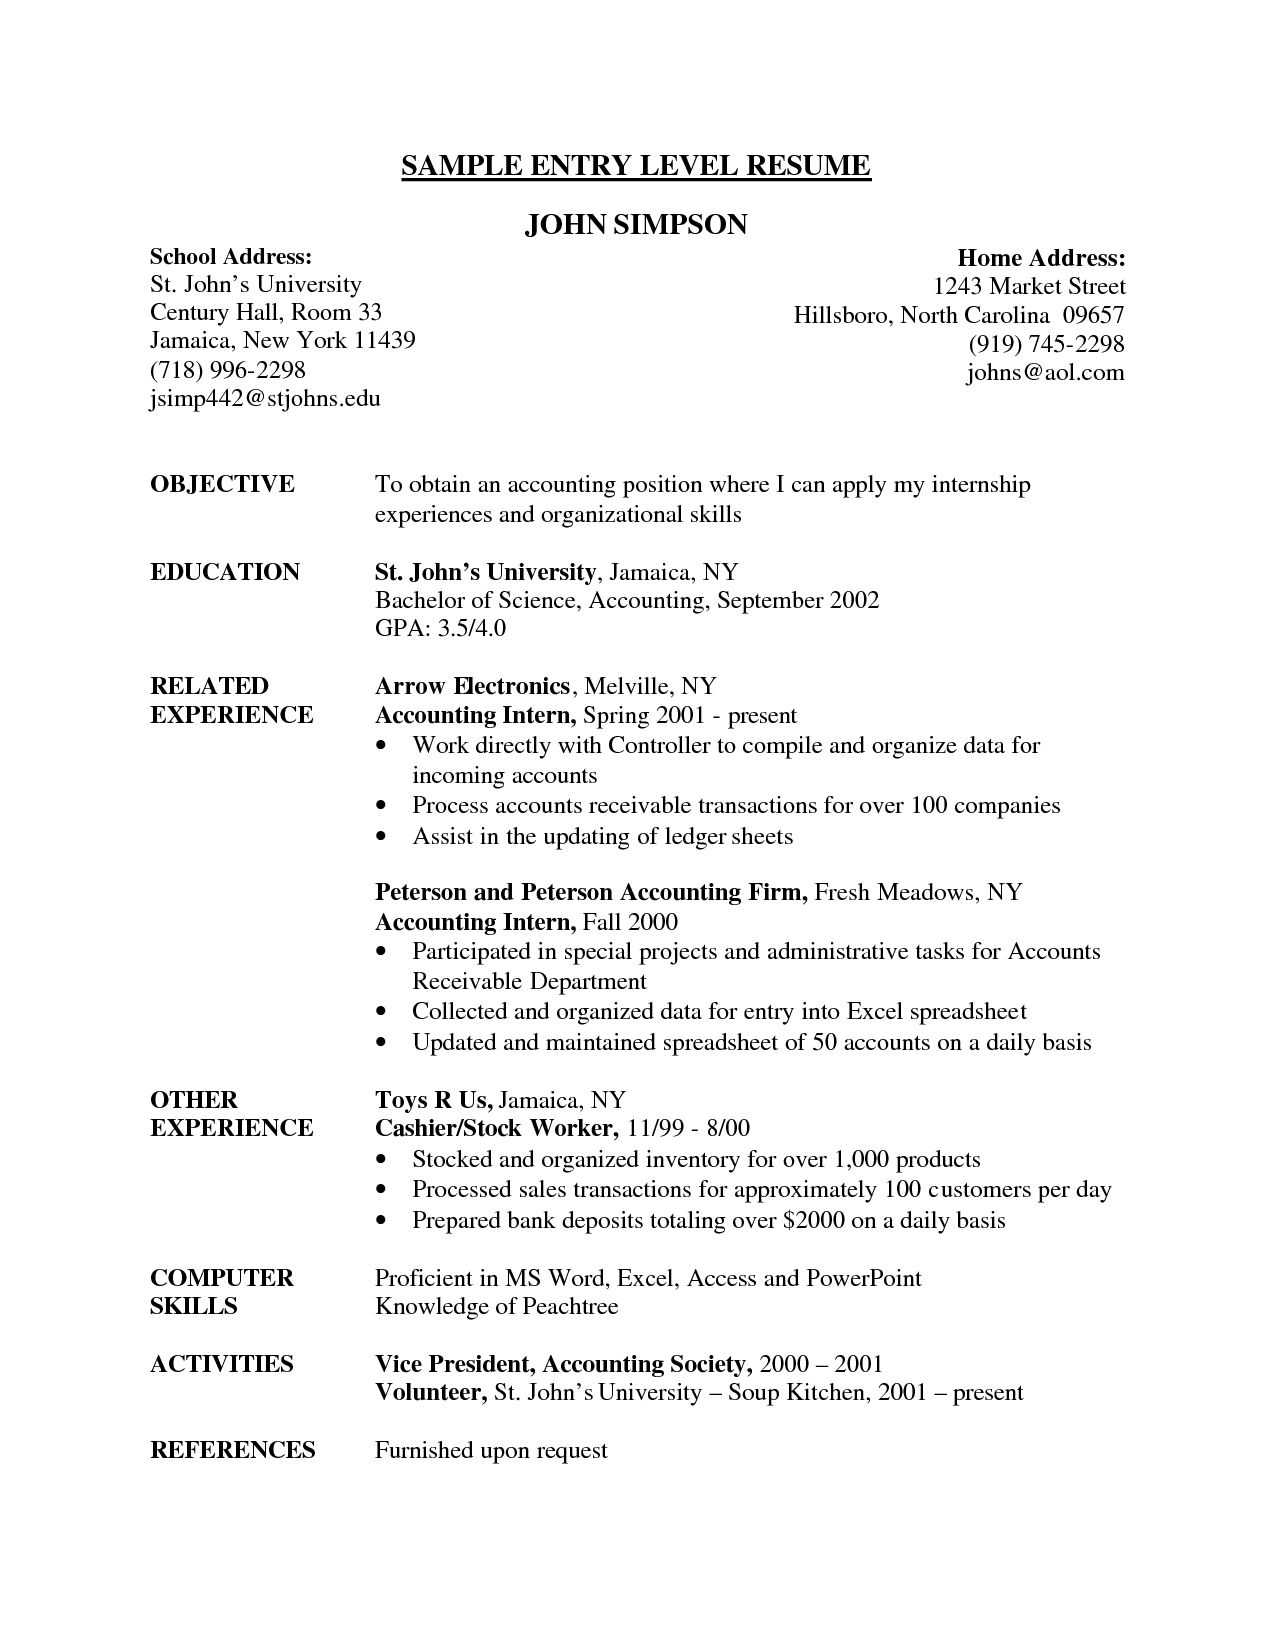 entry level resume example job examples marketing profile stanford sample objective for Resume Entry Level Resume Profile Examples